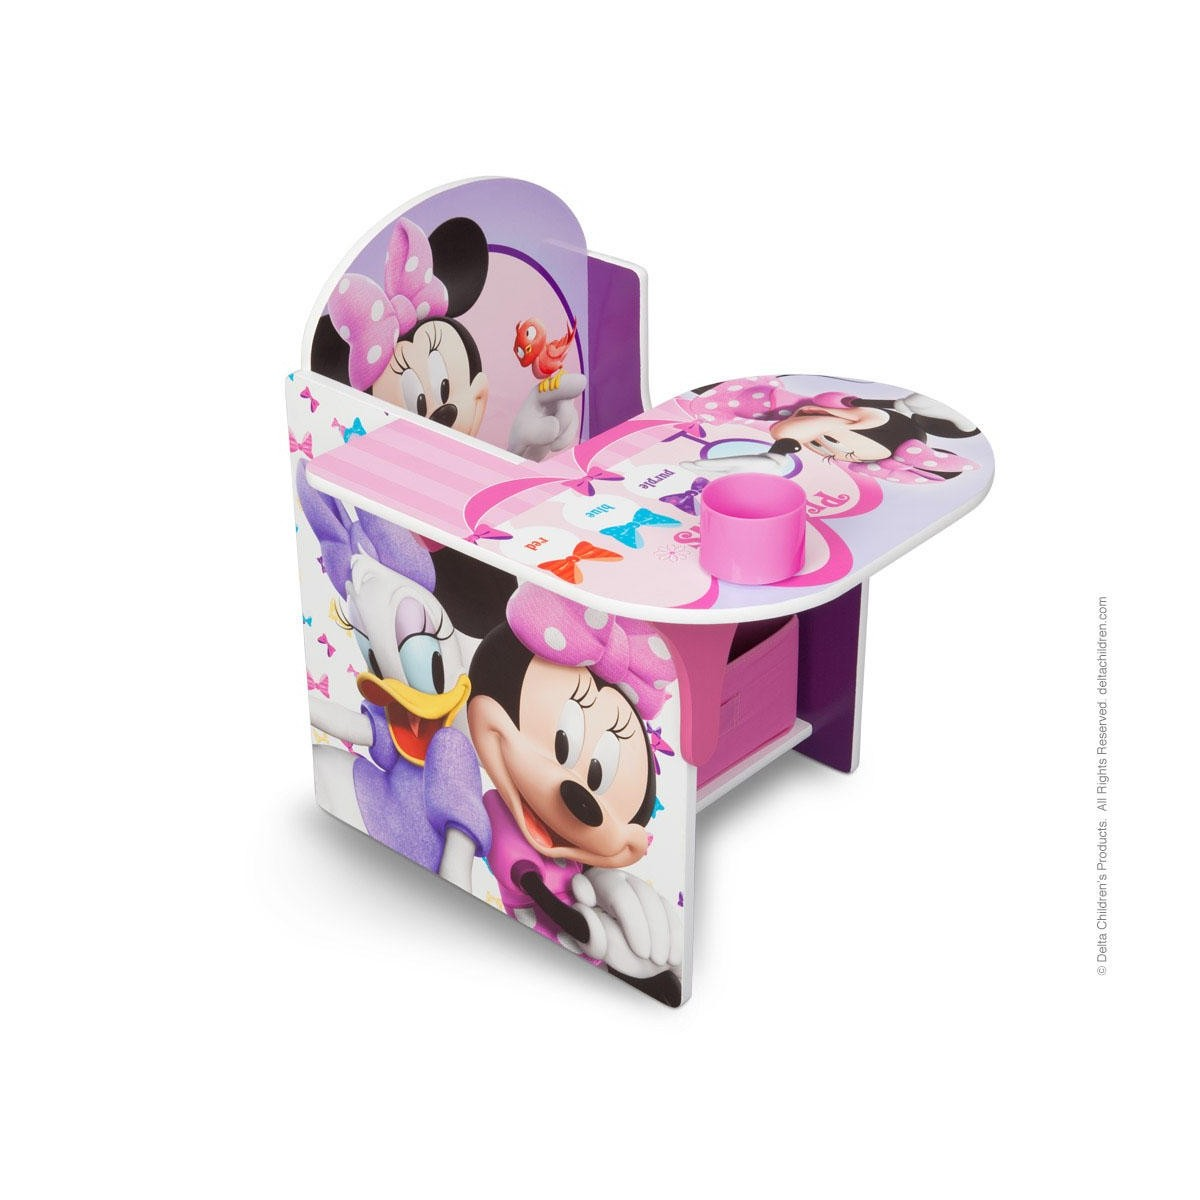 Silla escritorio minnie mouse disney env o 24h gratis for Muebles disney